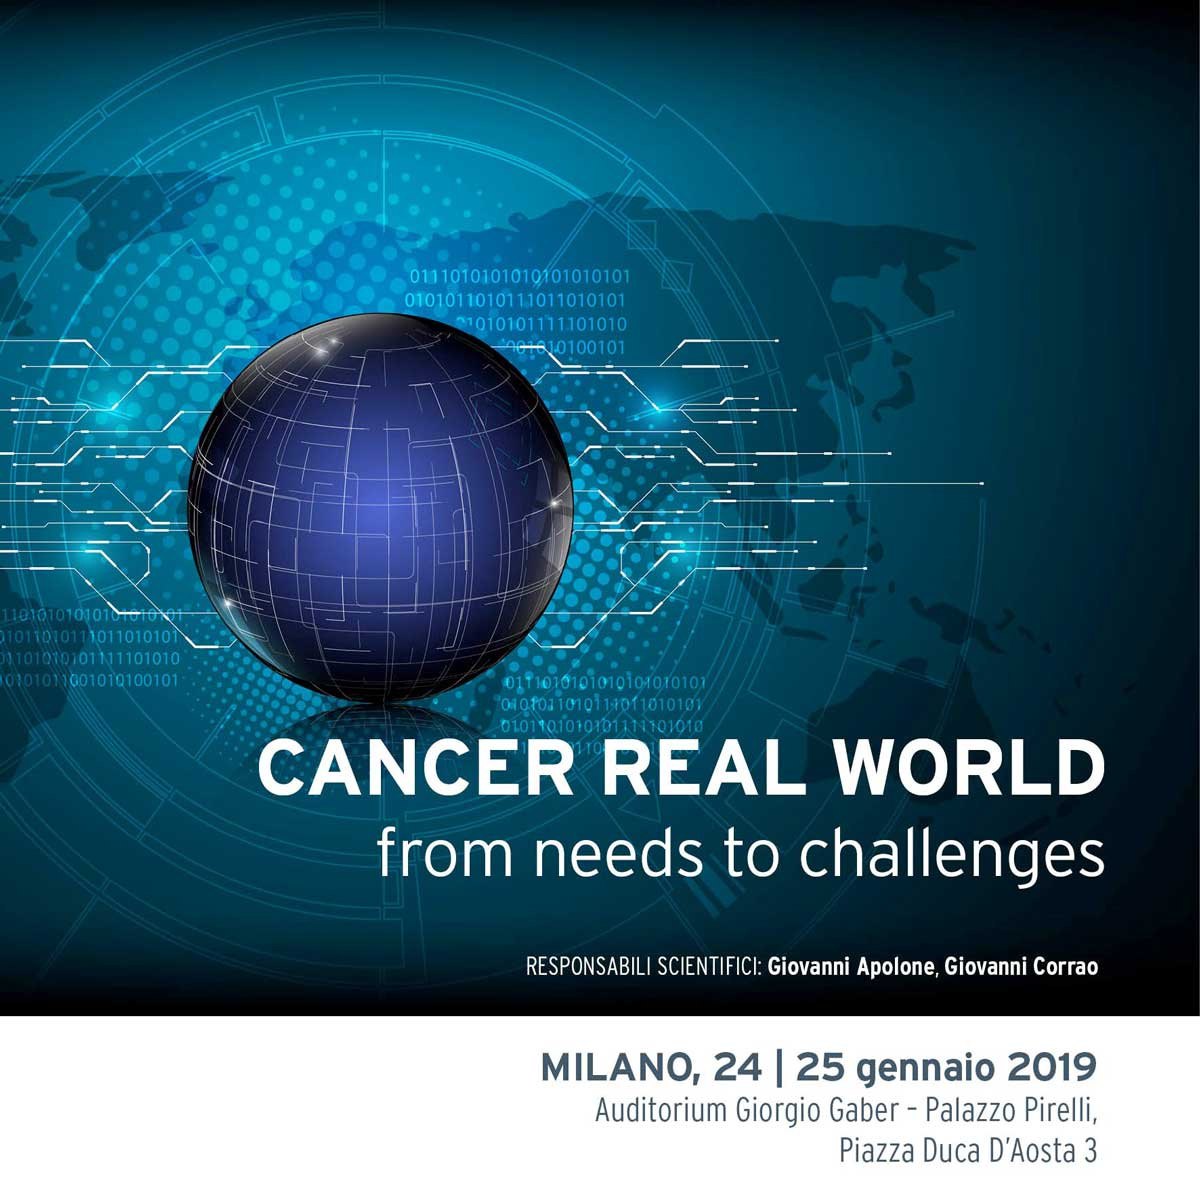 Cancer real world 1.1 web